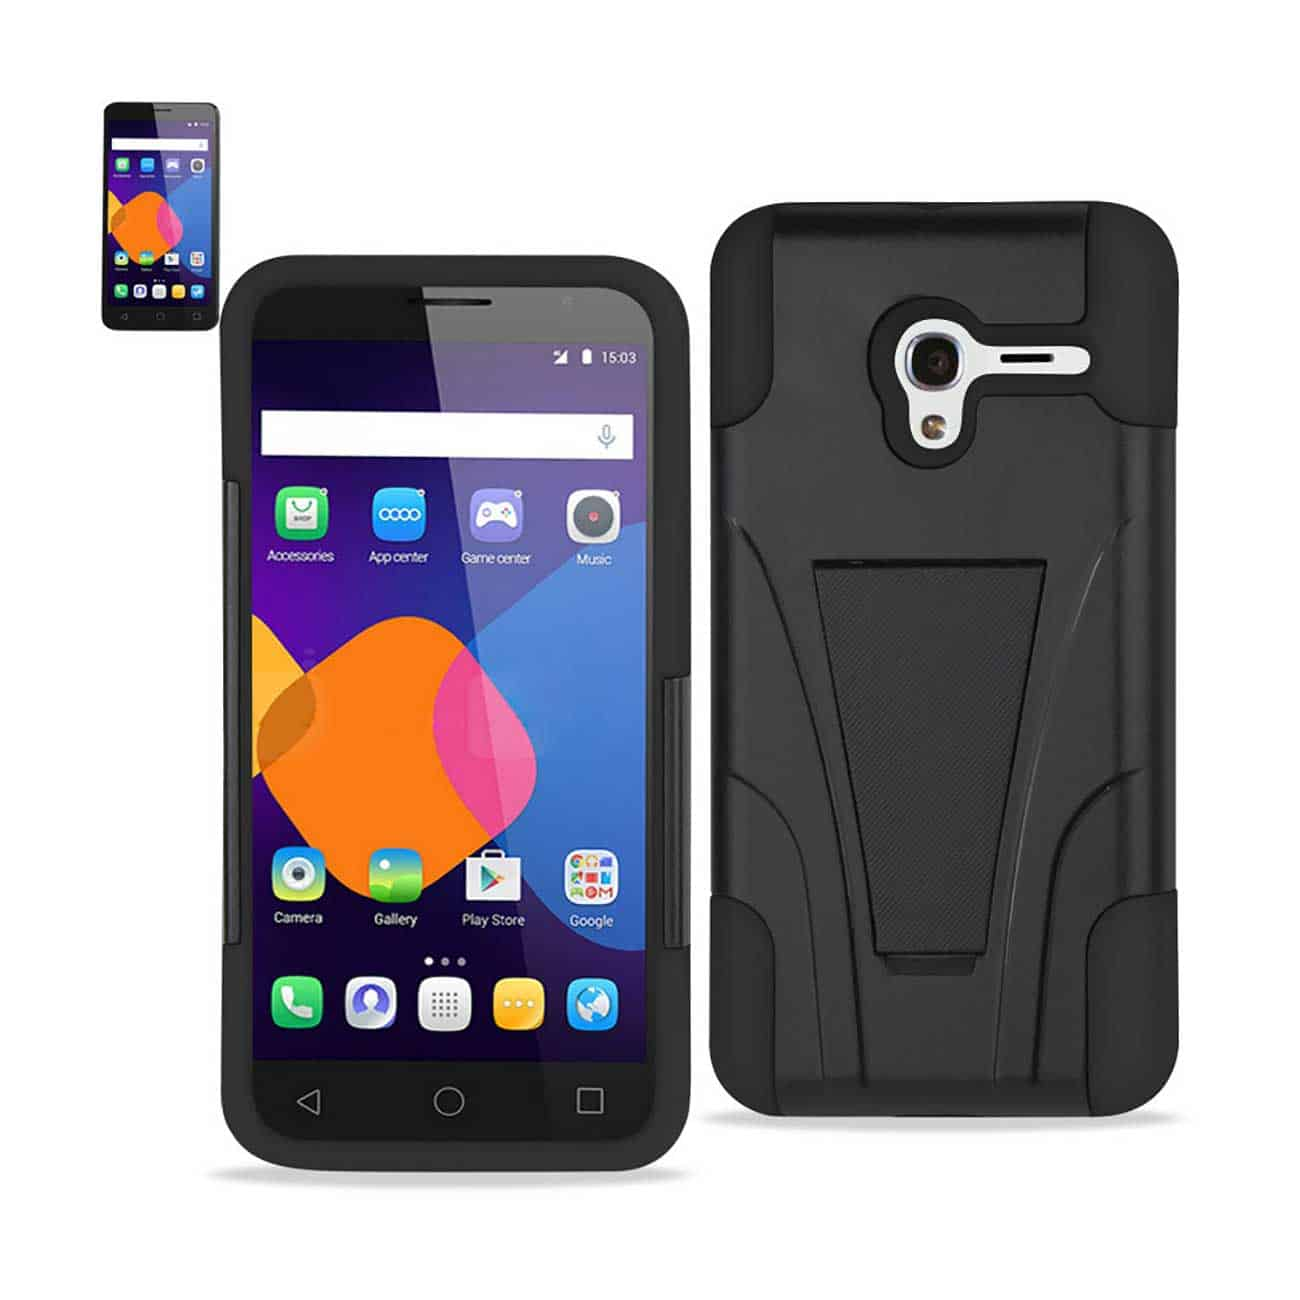 ALCATEL ONETOUCH PIXI 3 HYBRID HEAVY DUTY CASE WITH KICKSTAND IN BLACK